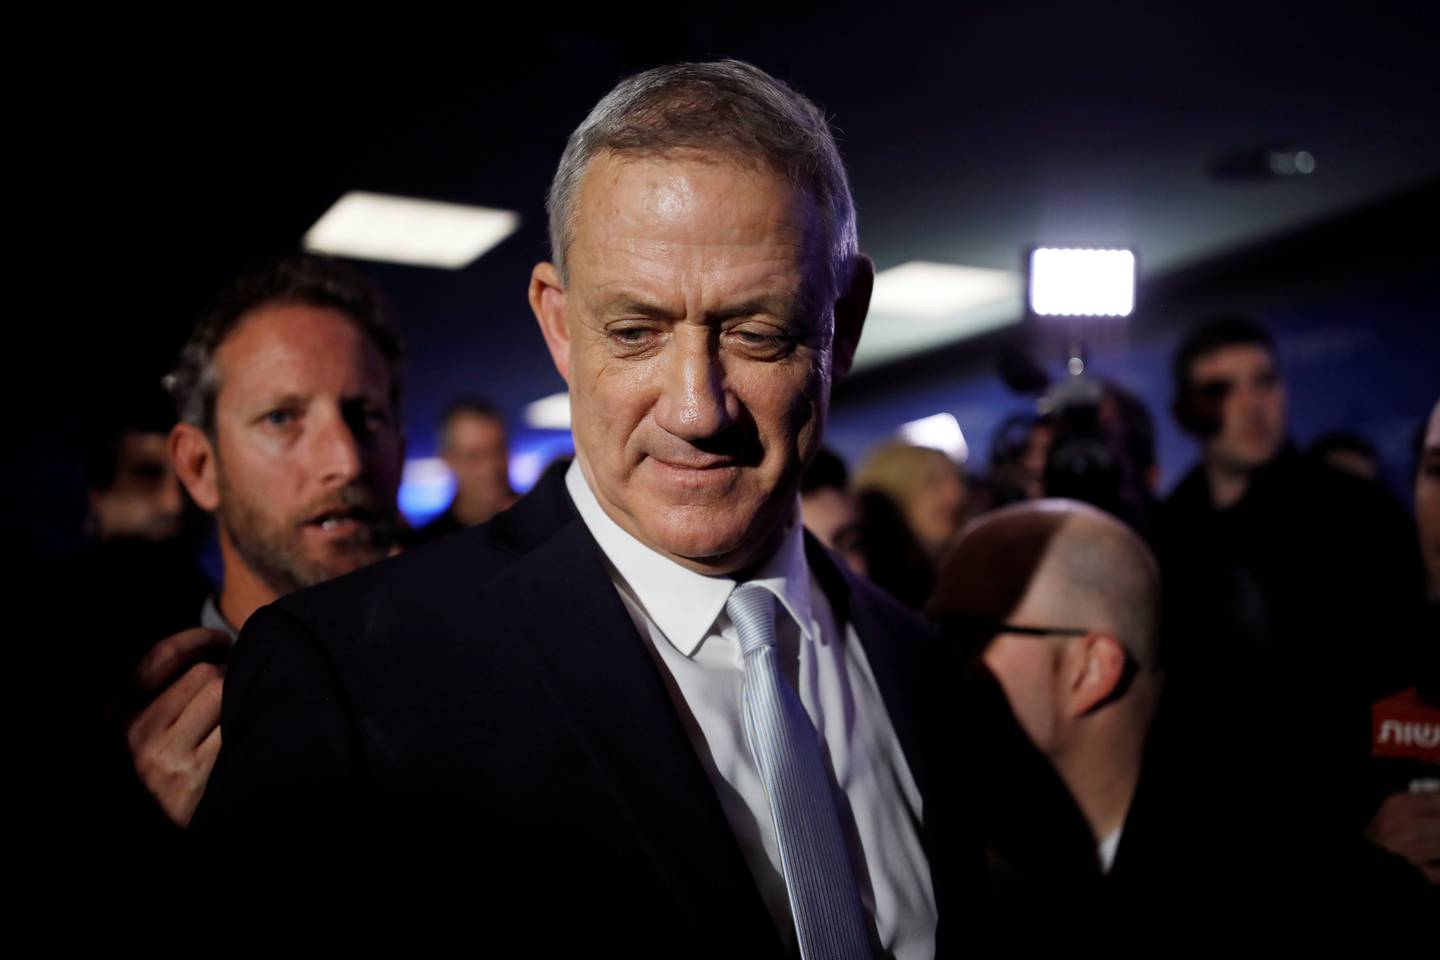 Benny Gantz, head of Resilience party is seen after a news conference, in Tel Aviv, Israel February 21, 2019. REUTERS/Amir Cohen